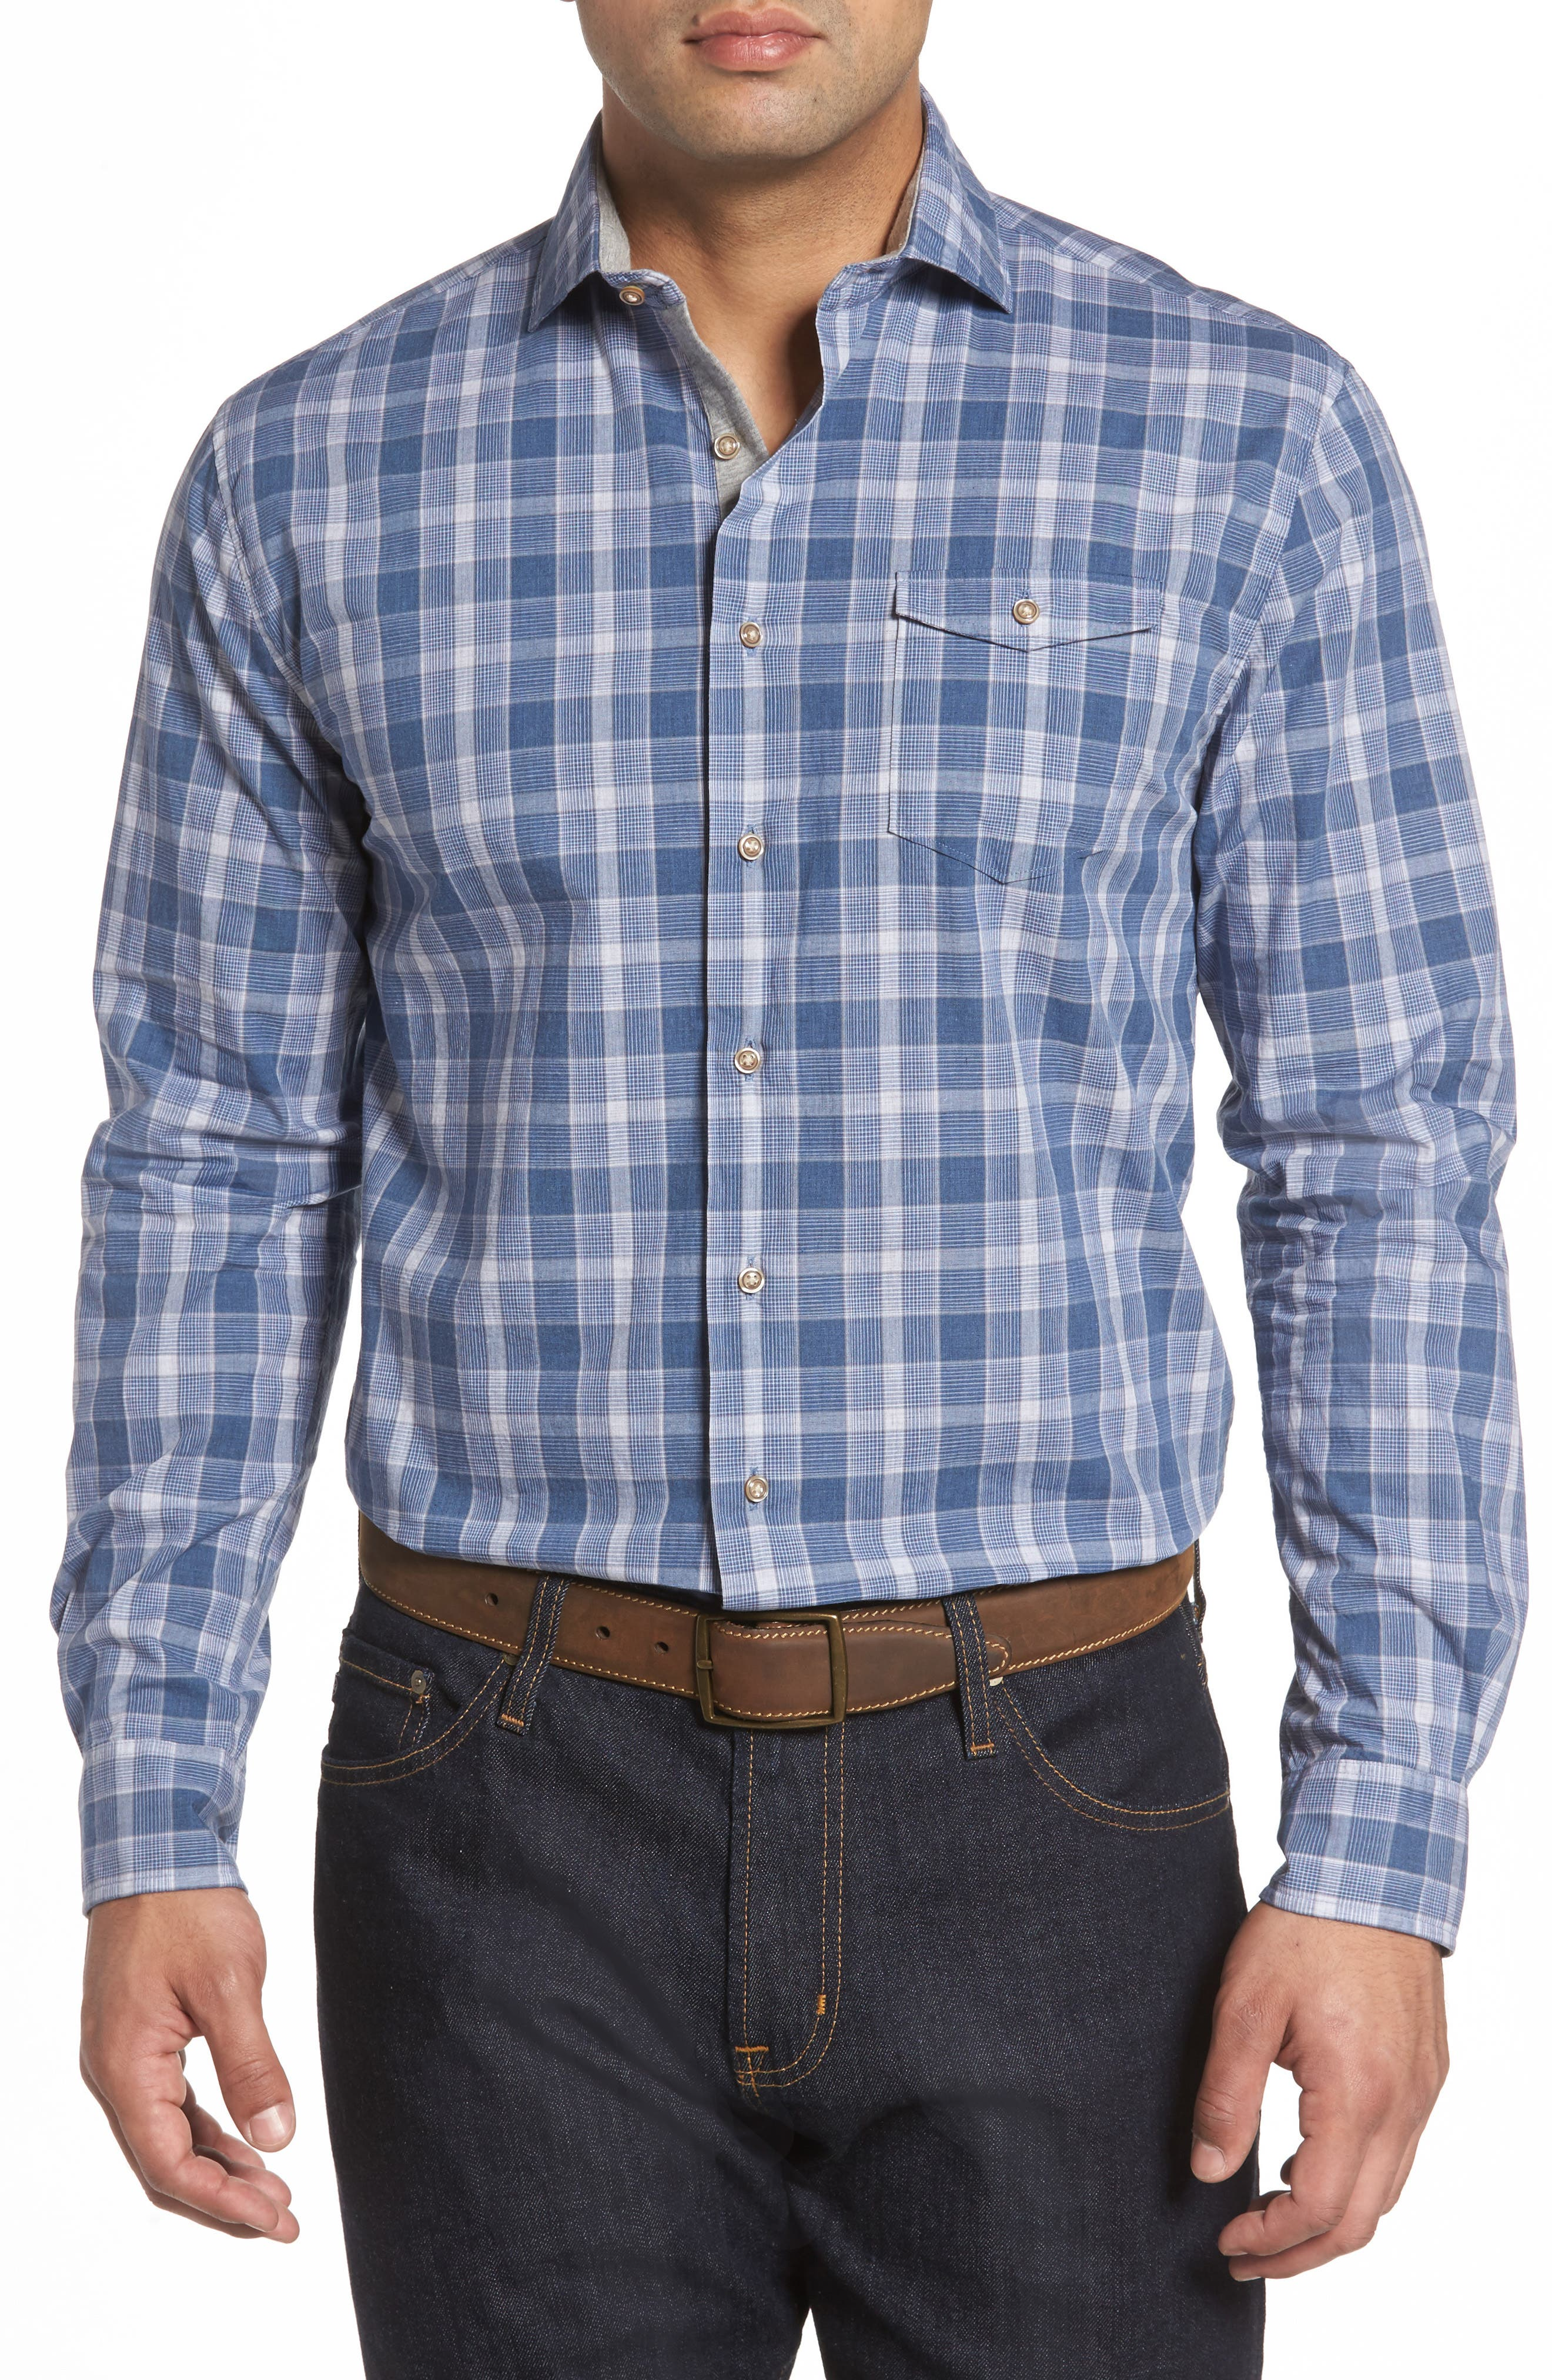 Highlands Classic Fit Plaid Sport Shirt,                             Main thumbnail 1, color,                             464